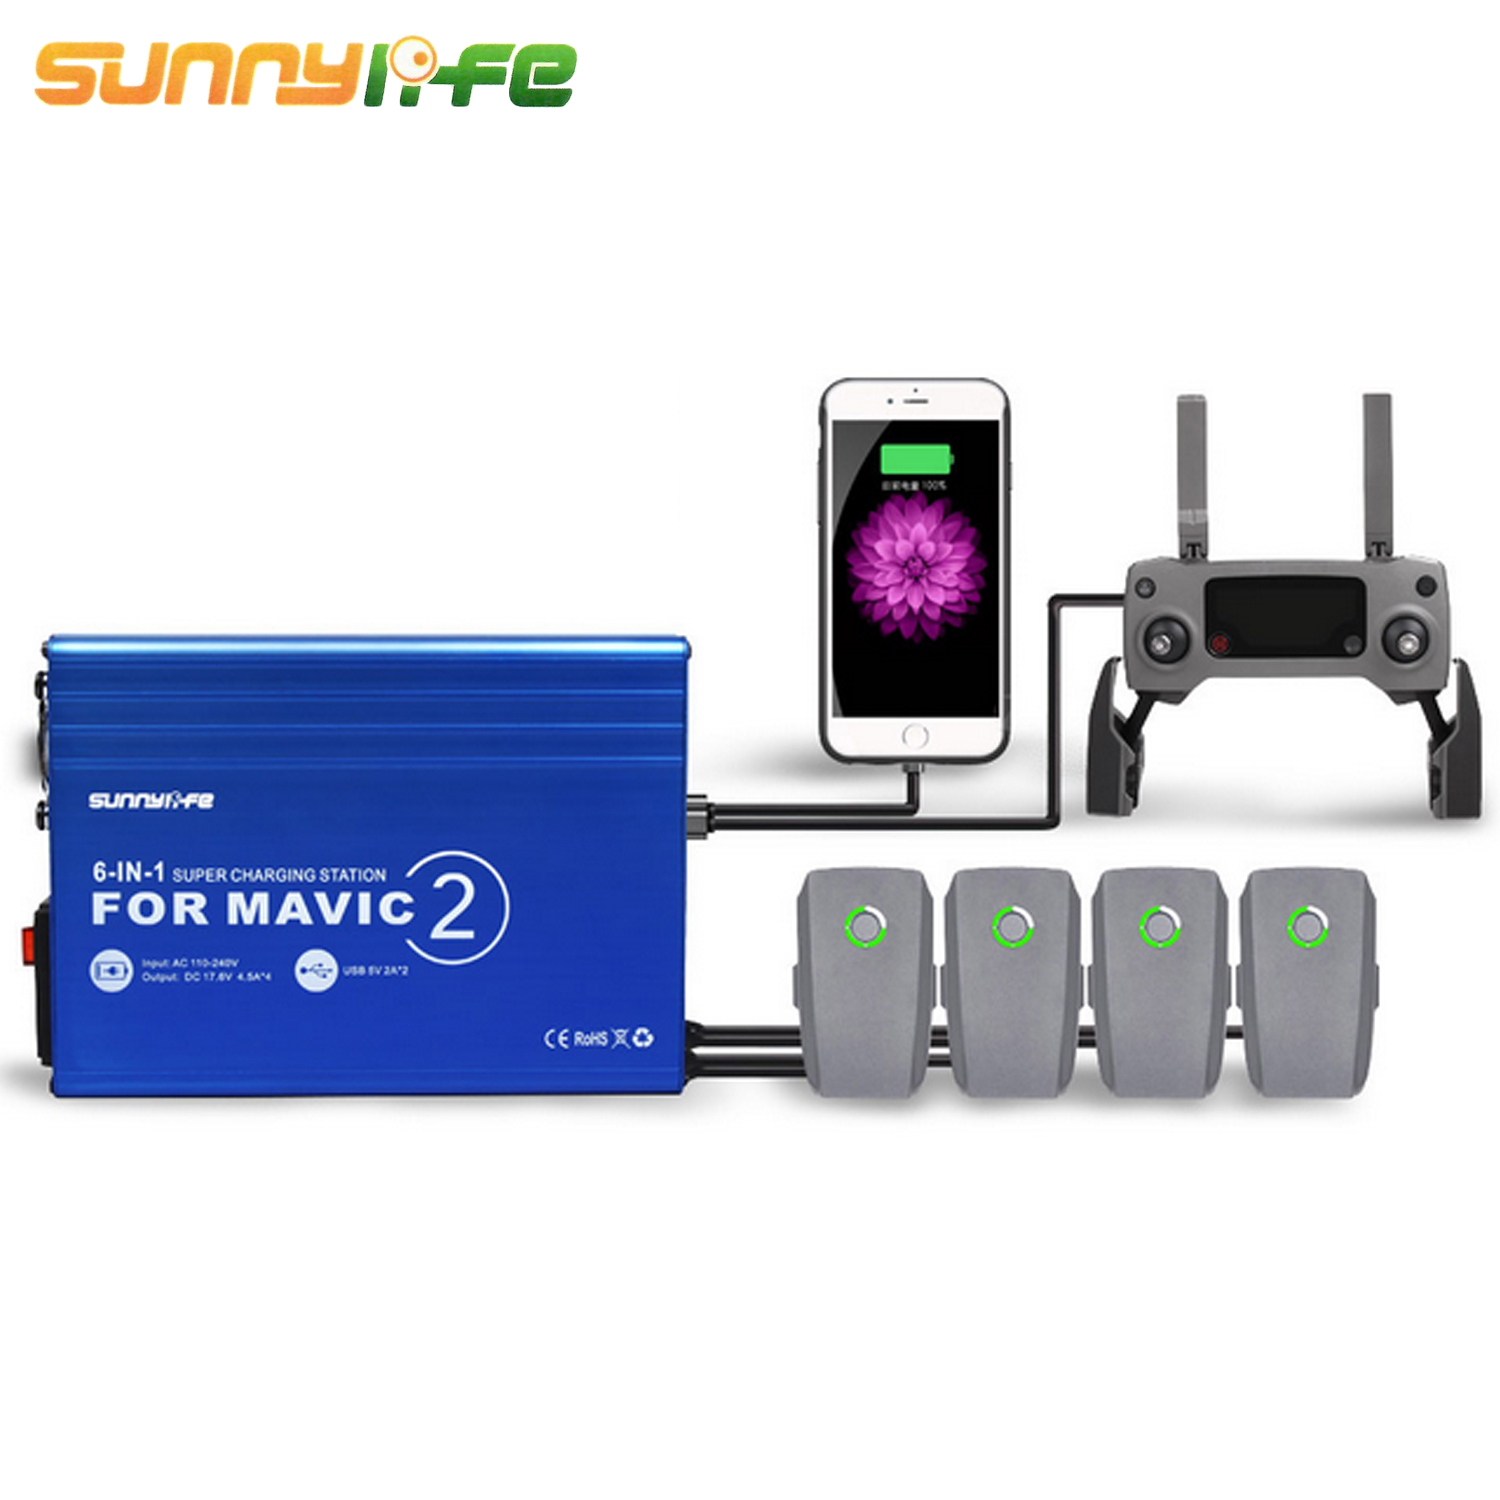 SUNNYLIFE 6 in 1 Portable Charger Charging with 2 USB Ports for DJI Mavic 2 Pro